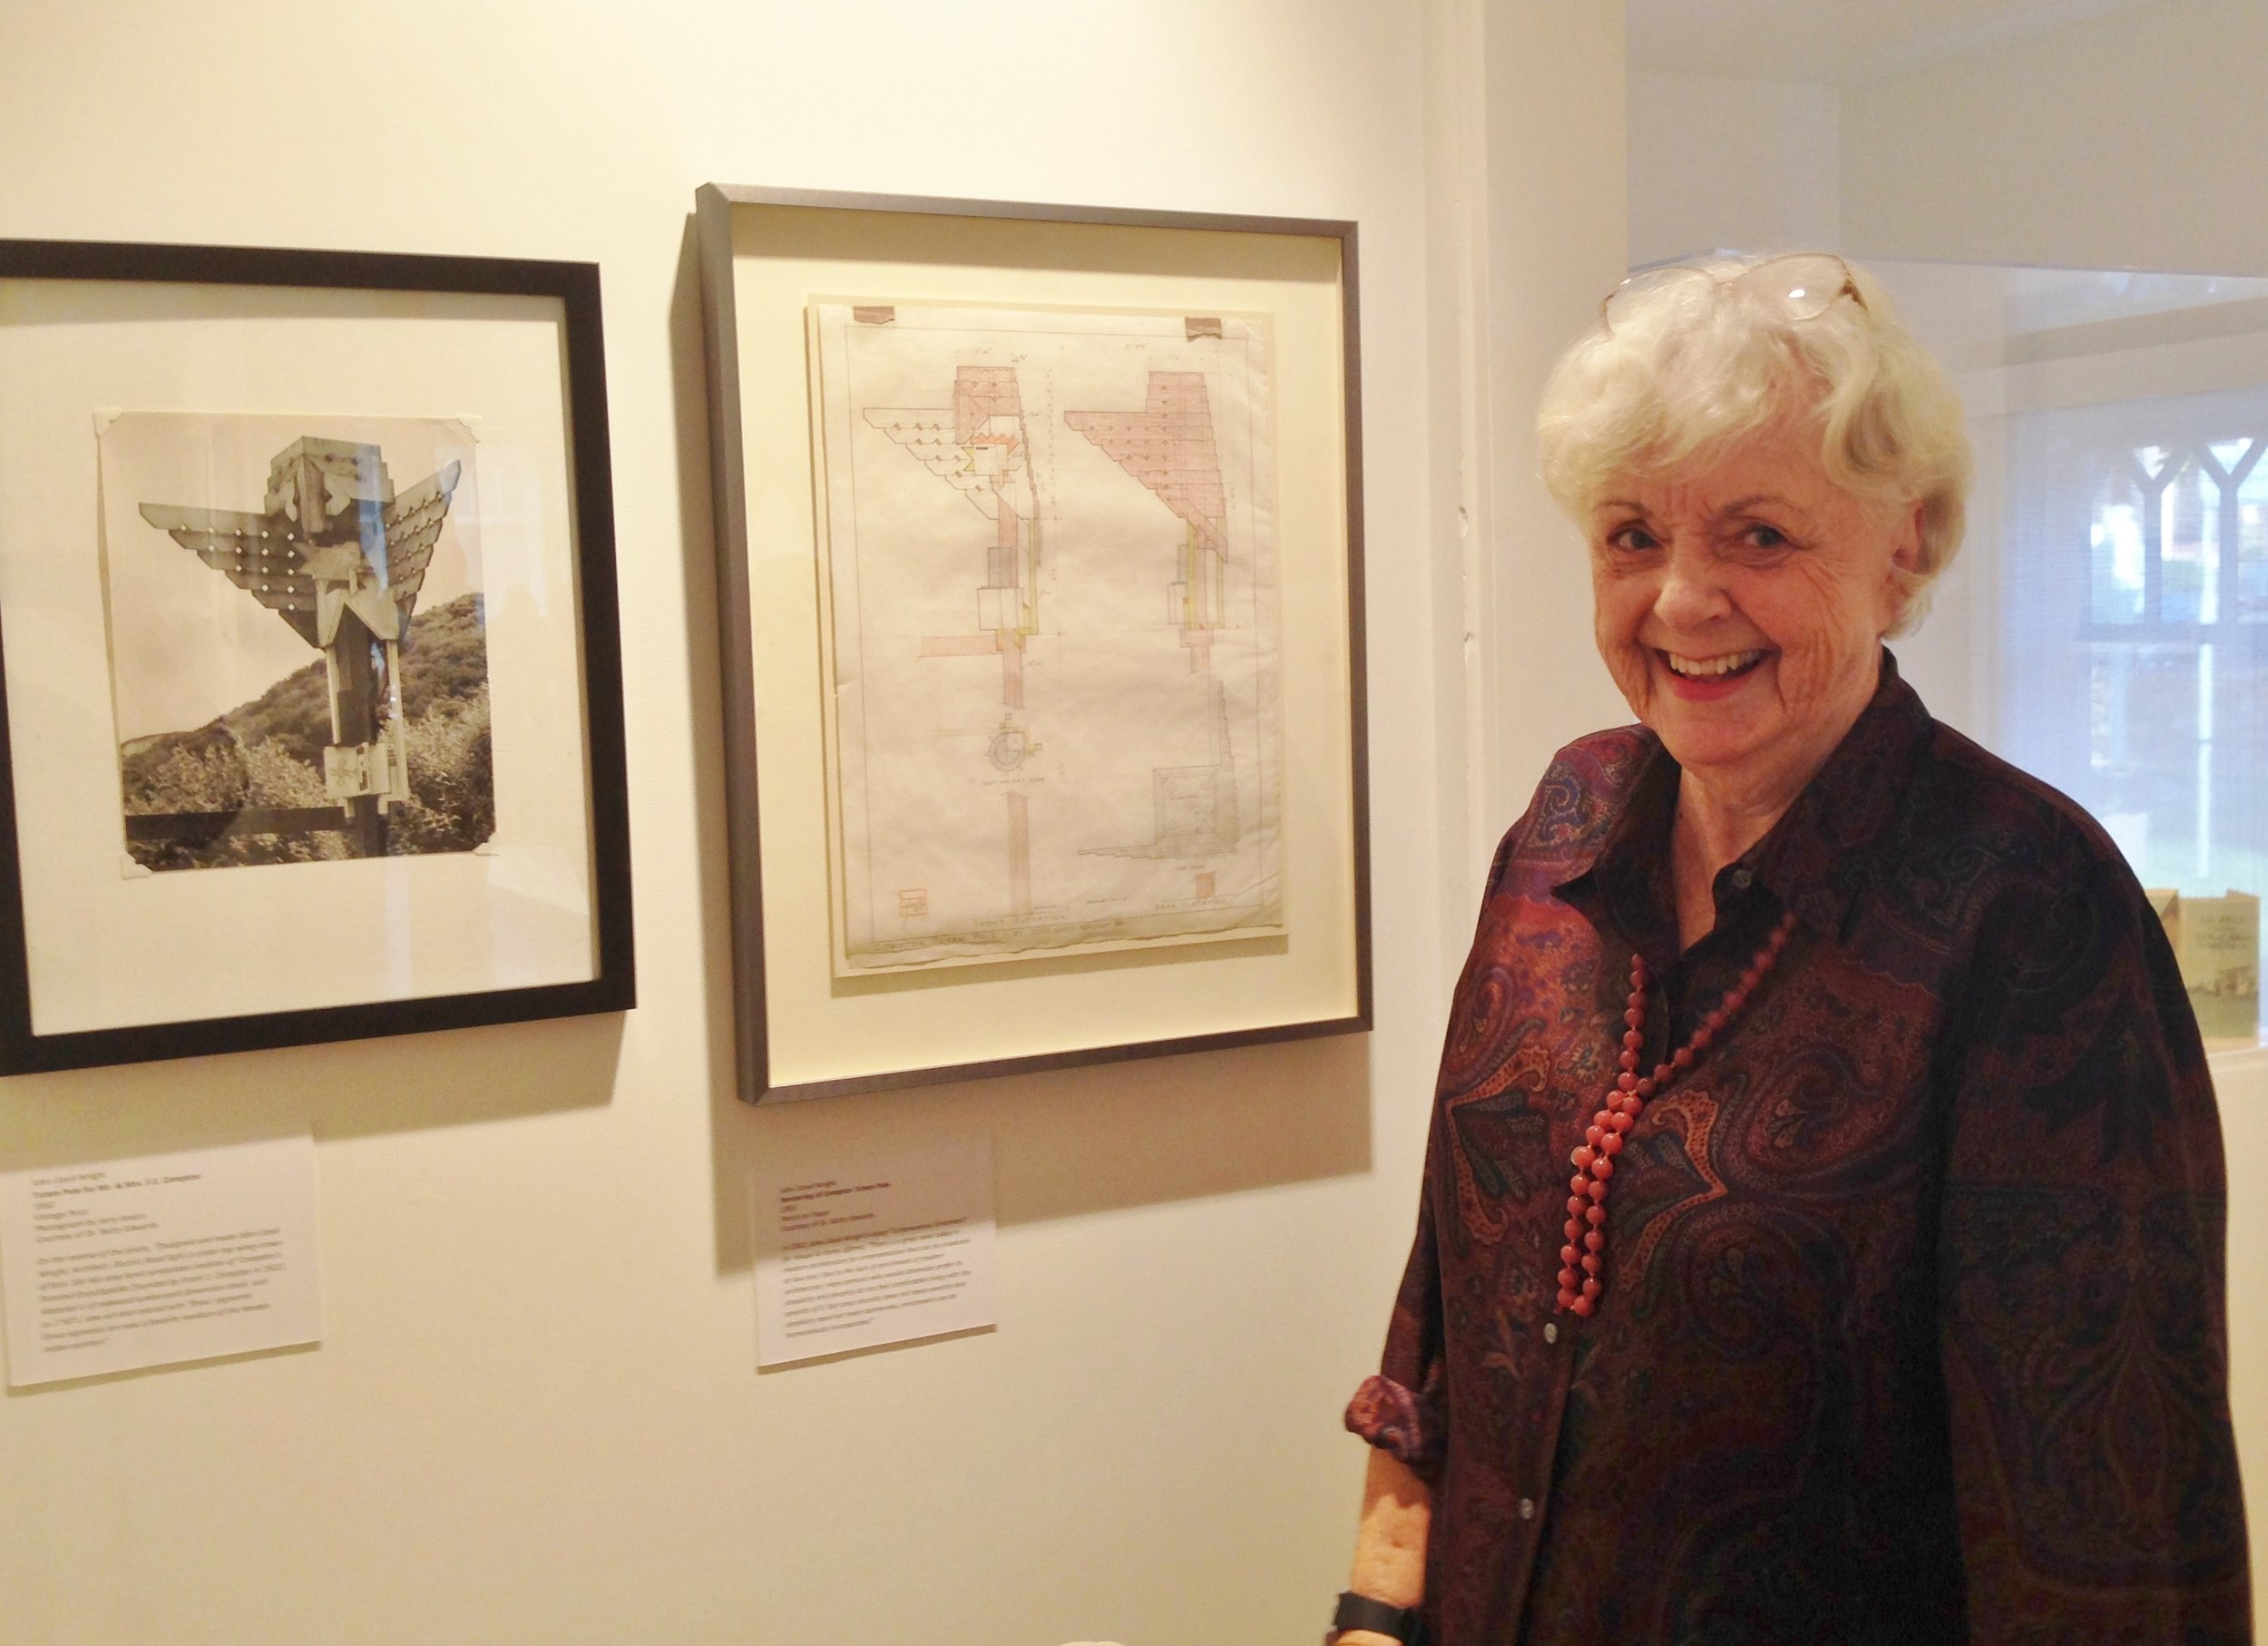 Betty Edwards, author of Drawing on the Right Side of the Brain